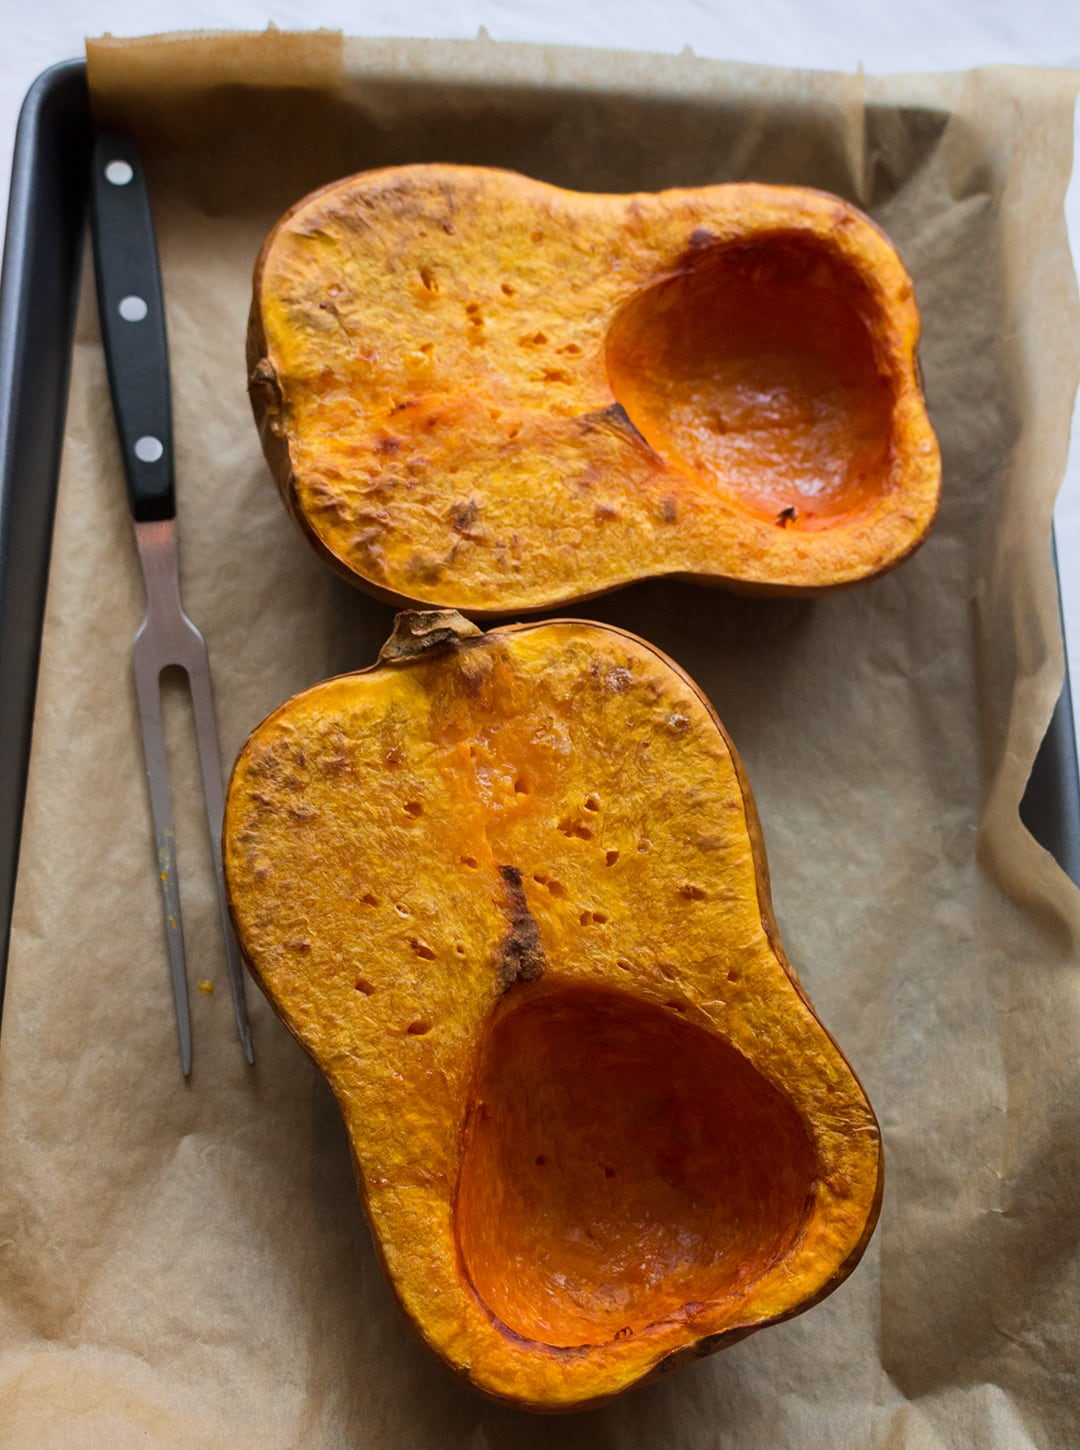 Vegan Creamy Roasted Butternut Squash Soup - roasting the squash - delicious and easy fall recipe and the ultime comfort food! It's freezer friendly so you can double the recipe to enjoy it later.   thehealthfulideas.com